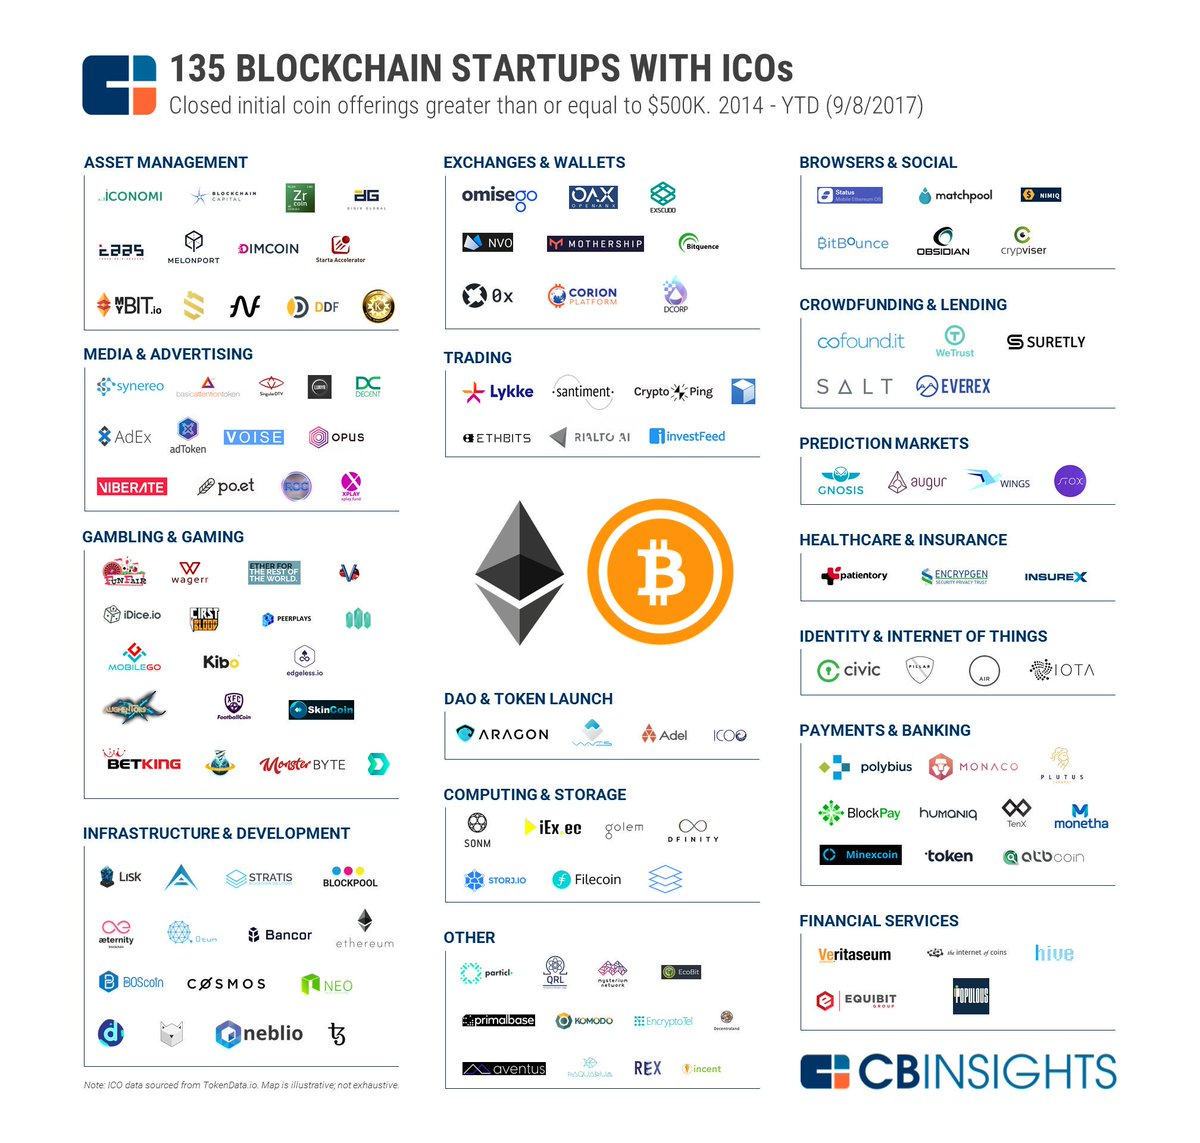 135 #blockchain #startups that have raised money through #ICOs. #fintech #cryptocurrency #bitcoin #CyberSecurity #IoT #ai v/ @MikeQuindazzi<br>http://pic.twitter.com/Vok5jhFl7D